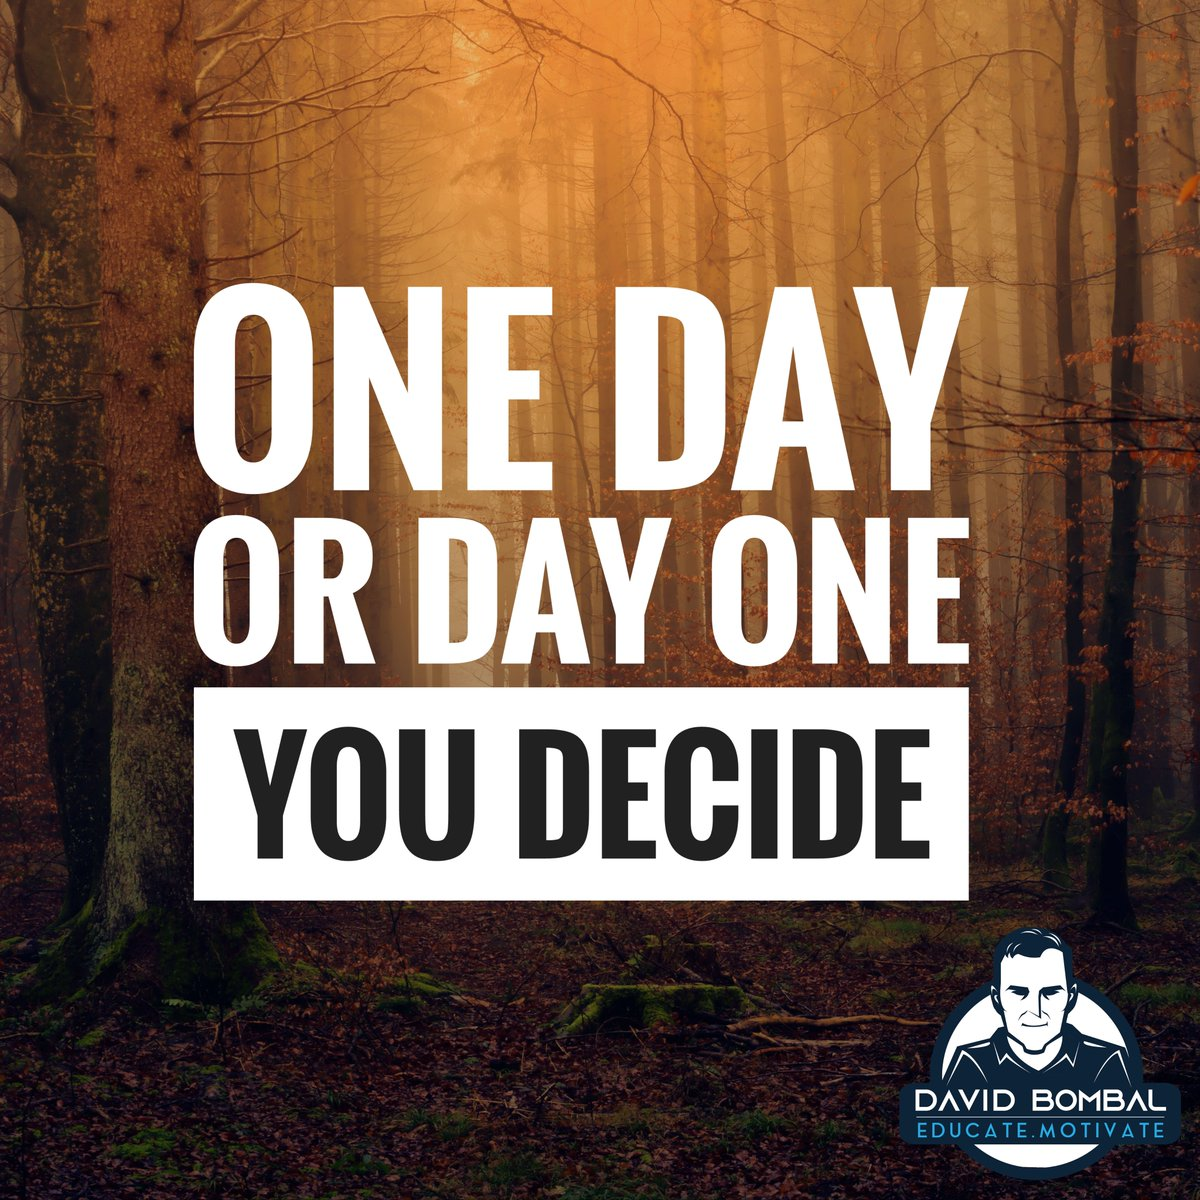 One day or day one. You decide.  #motivationquotes #dailymotivation #ccna #inspirationalquote #cisco pic.twitter.com/mhzRc3sAqo